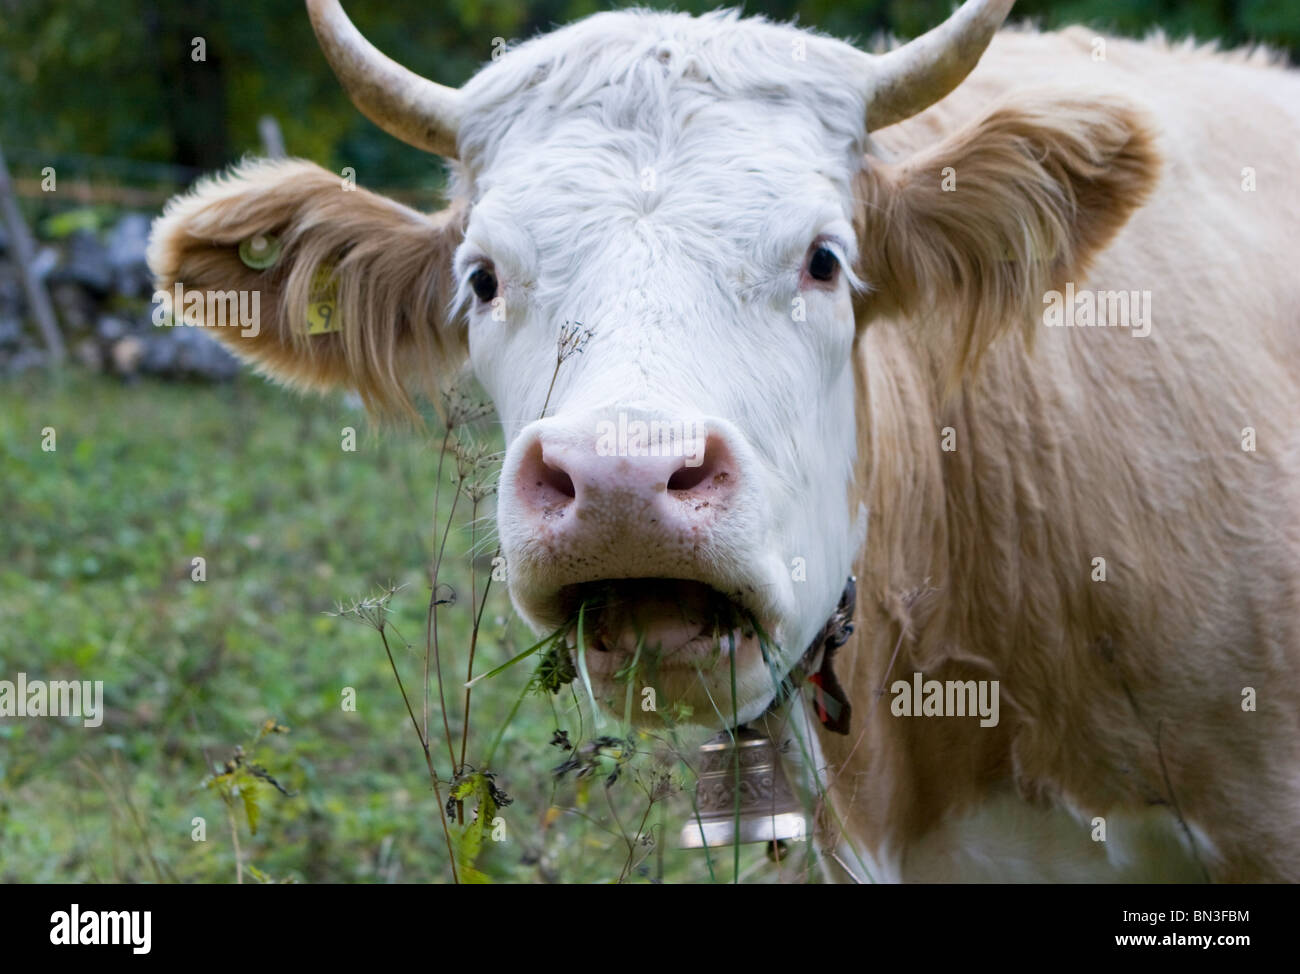 Funny swiss cow eating from pasture grass land in bernese oberland wearing neck bell and grass in mouth Stock Photo